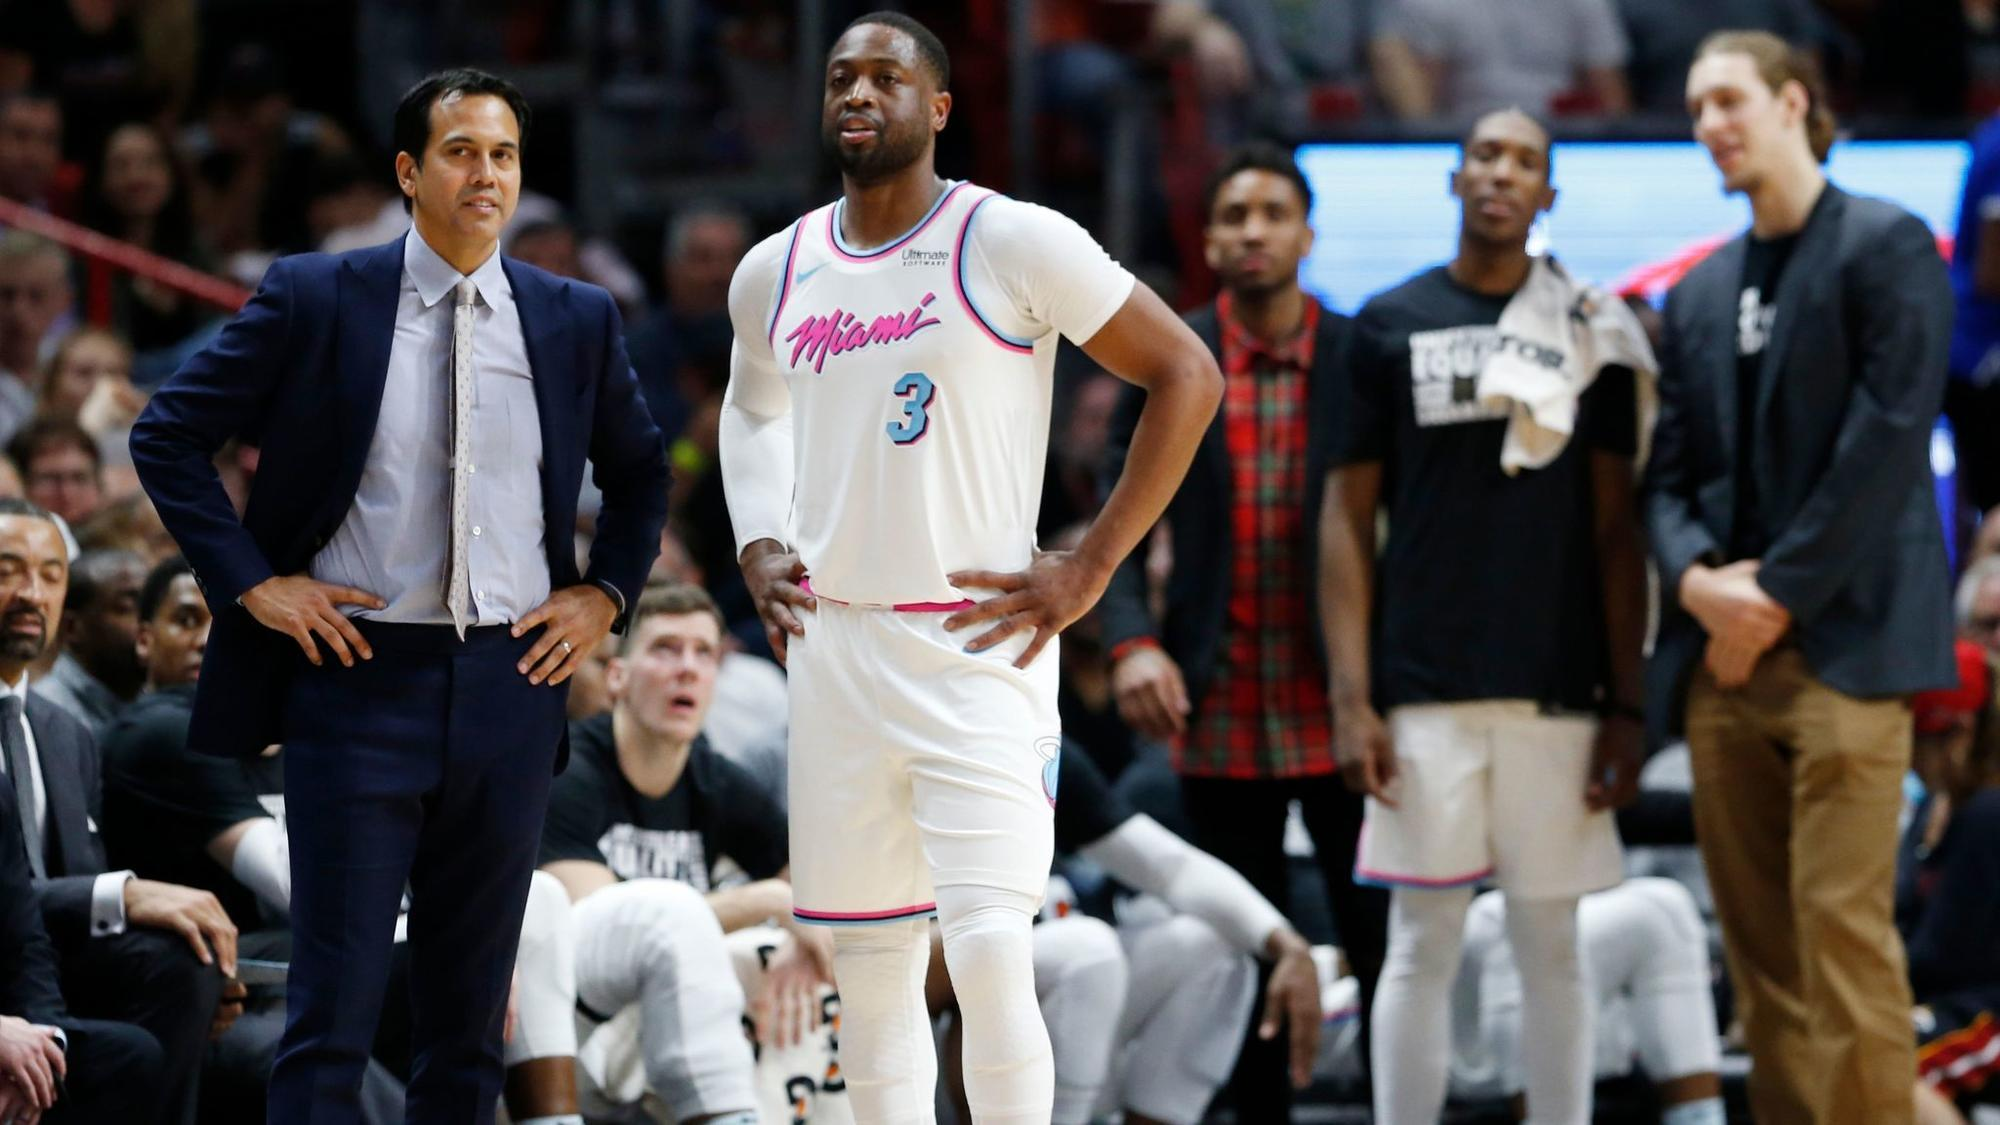 Fl-sp-miami-heat-main-thu-20180222